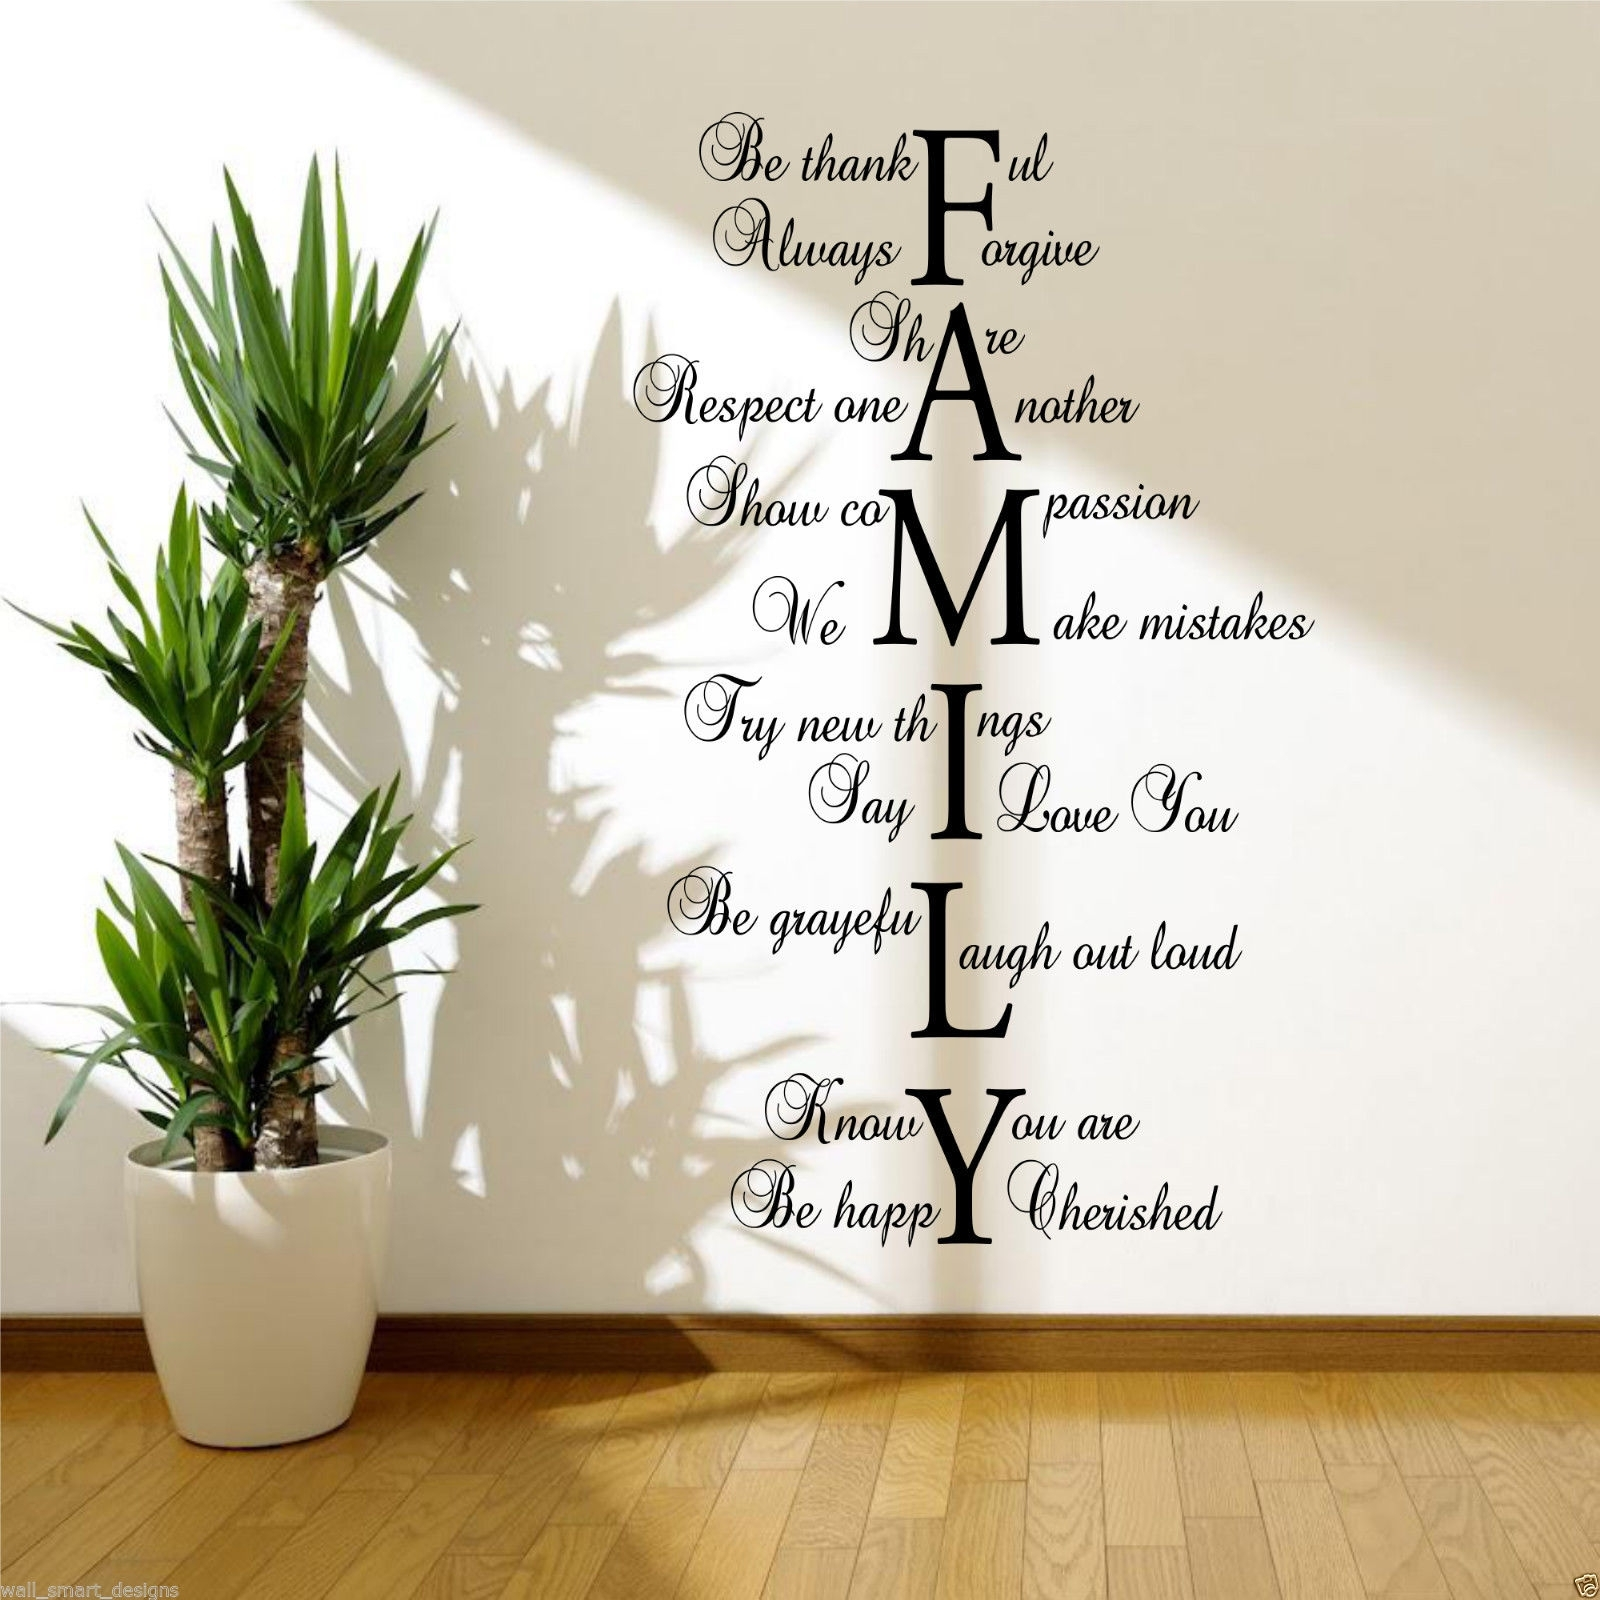 Family Love Life Wall Art Sticker Quote Room Decal Mural Transfer With Regard To Wall Art Quotes (View 2 of 20)